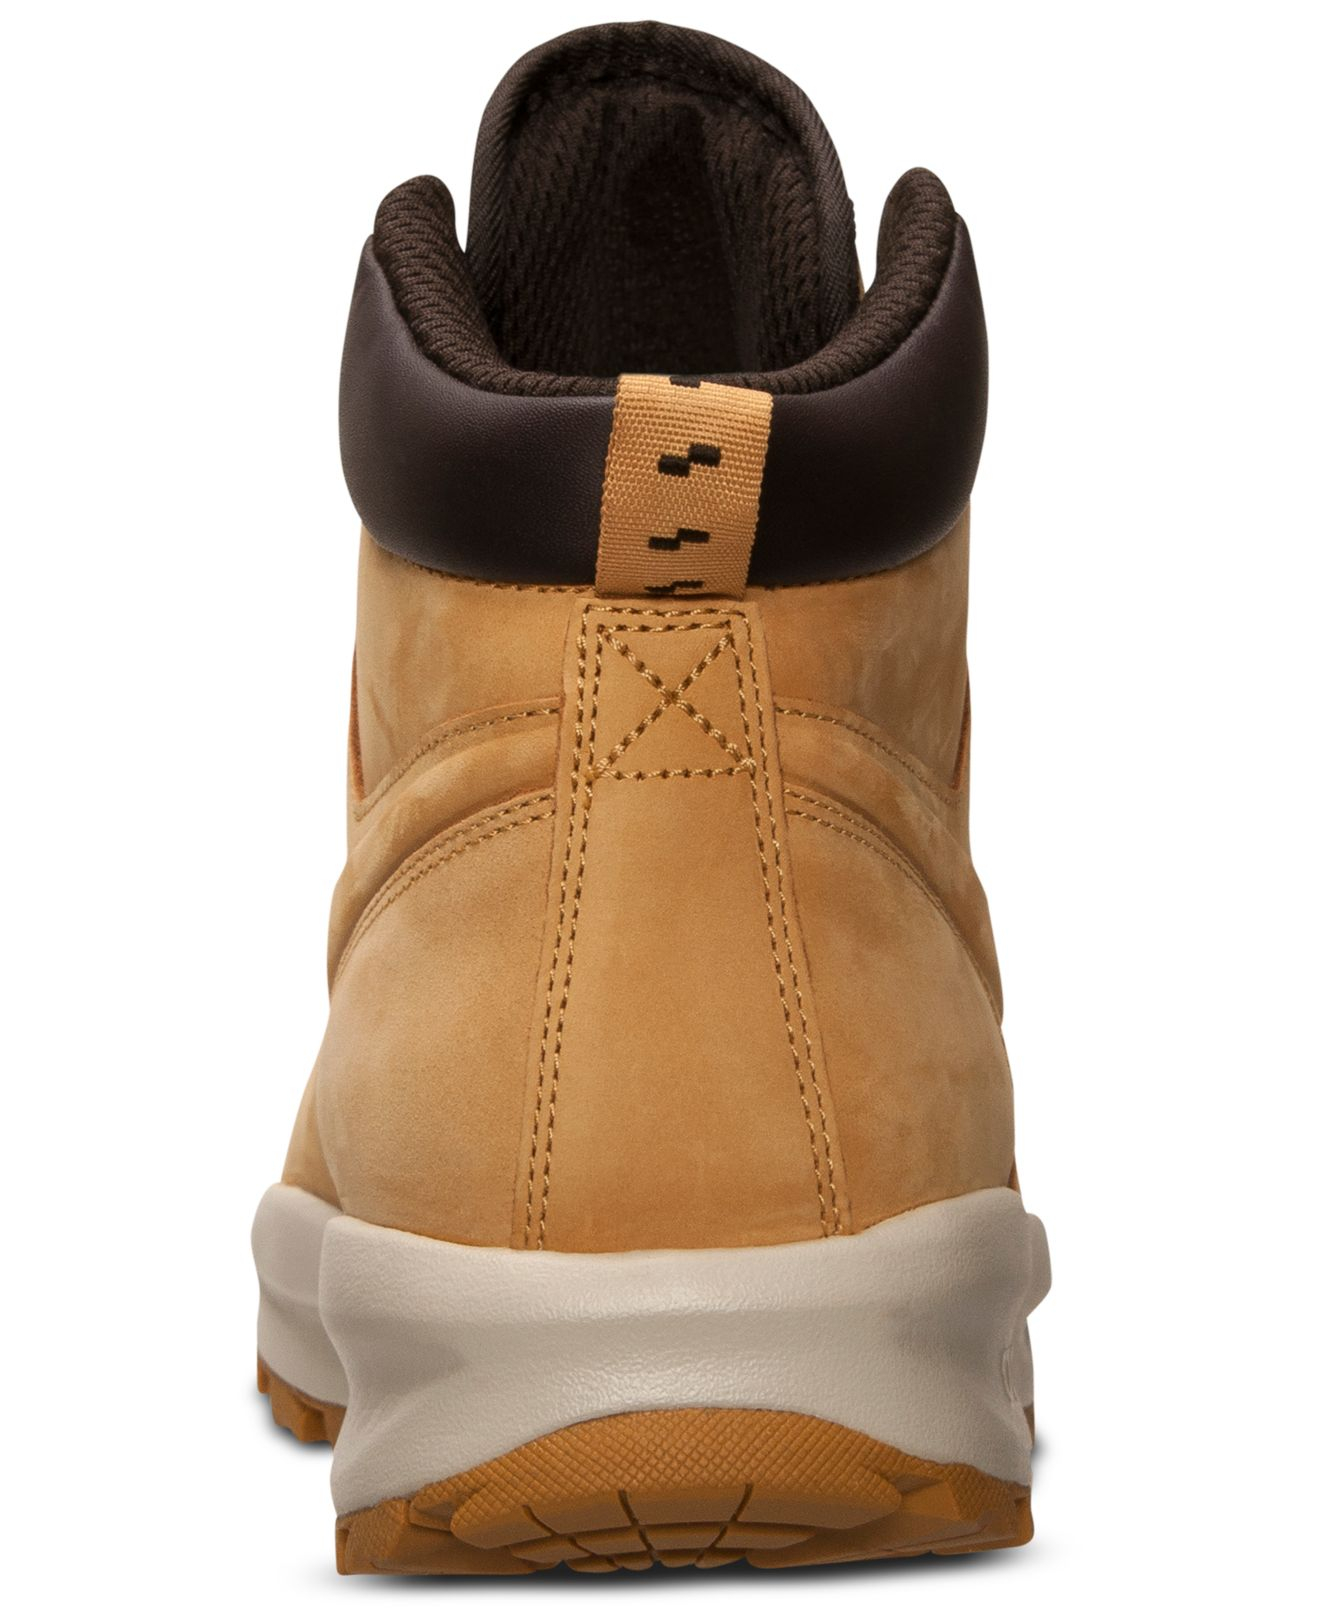 nike s manoa leather boots from finish line in